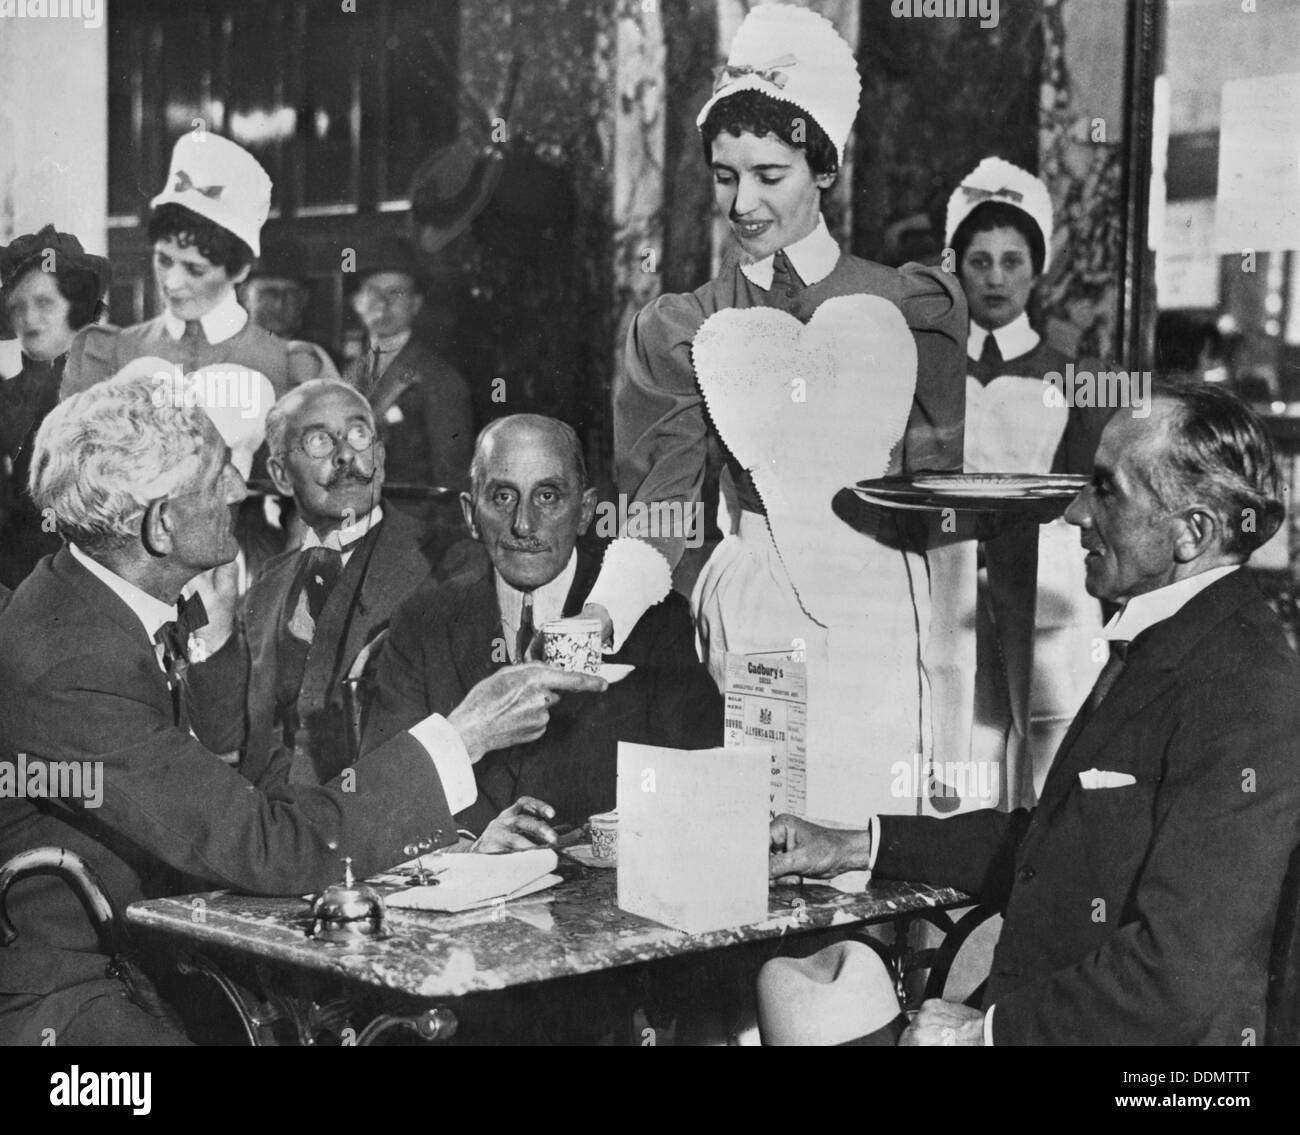 Lyons tea shop, Piccadilly, London, (early 20th century?) - Stock Image